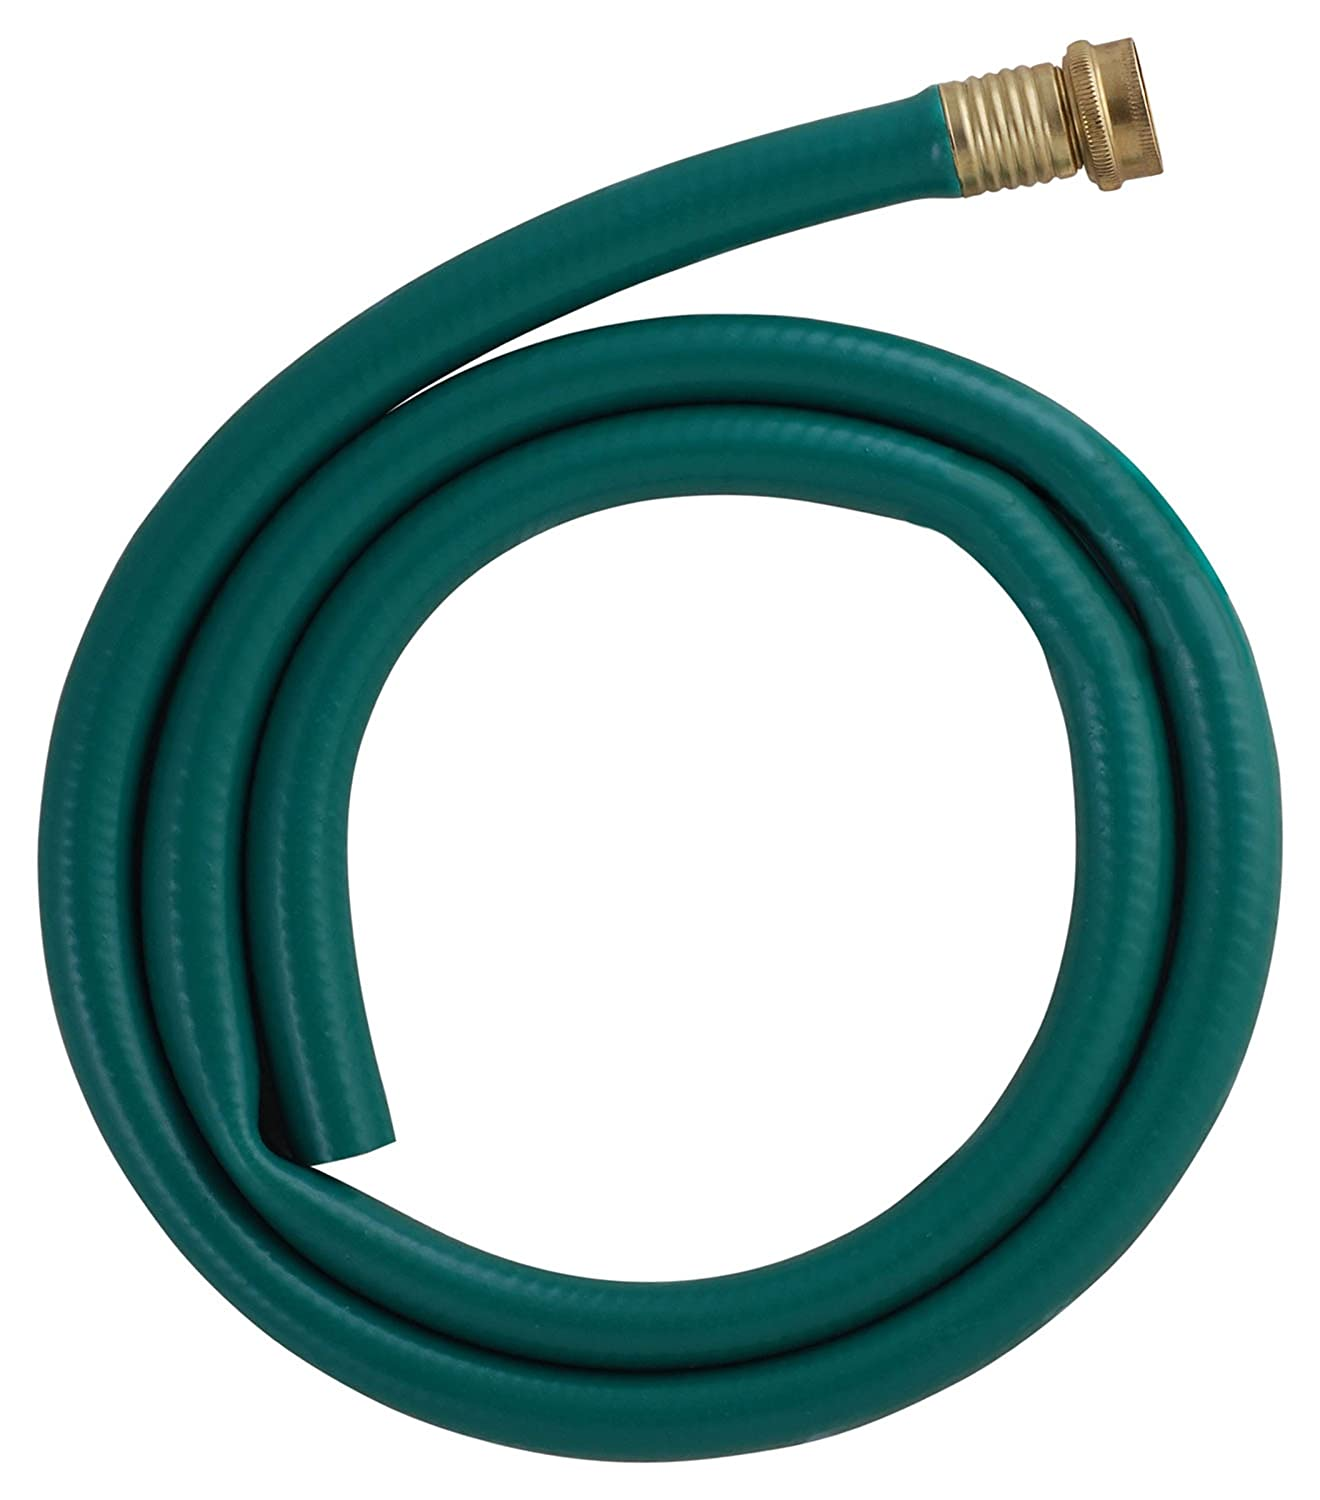 LDR Industries 504 1300 Drain Hose 5-Foot green